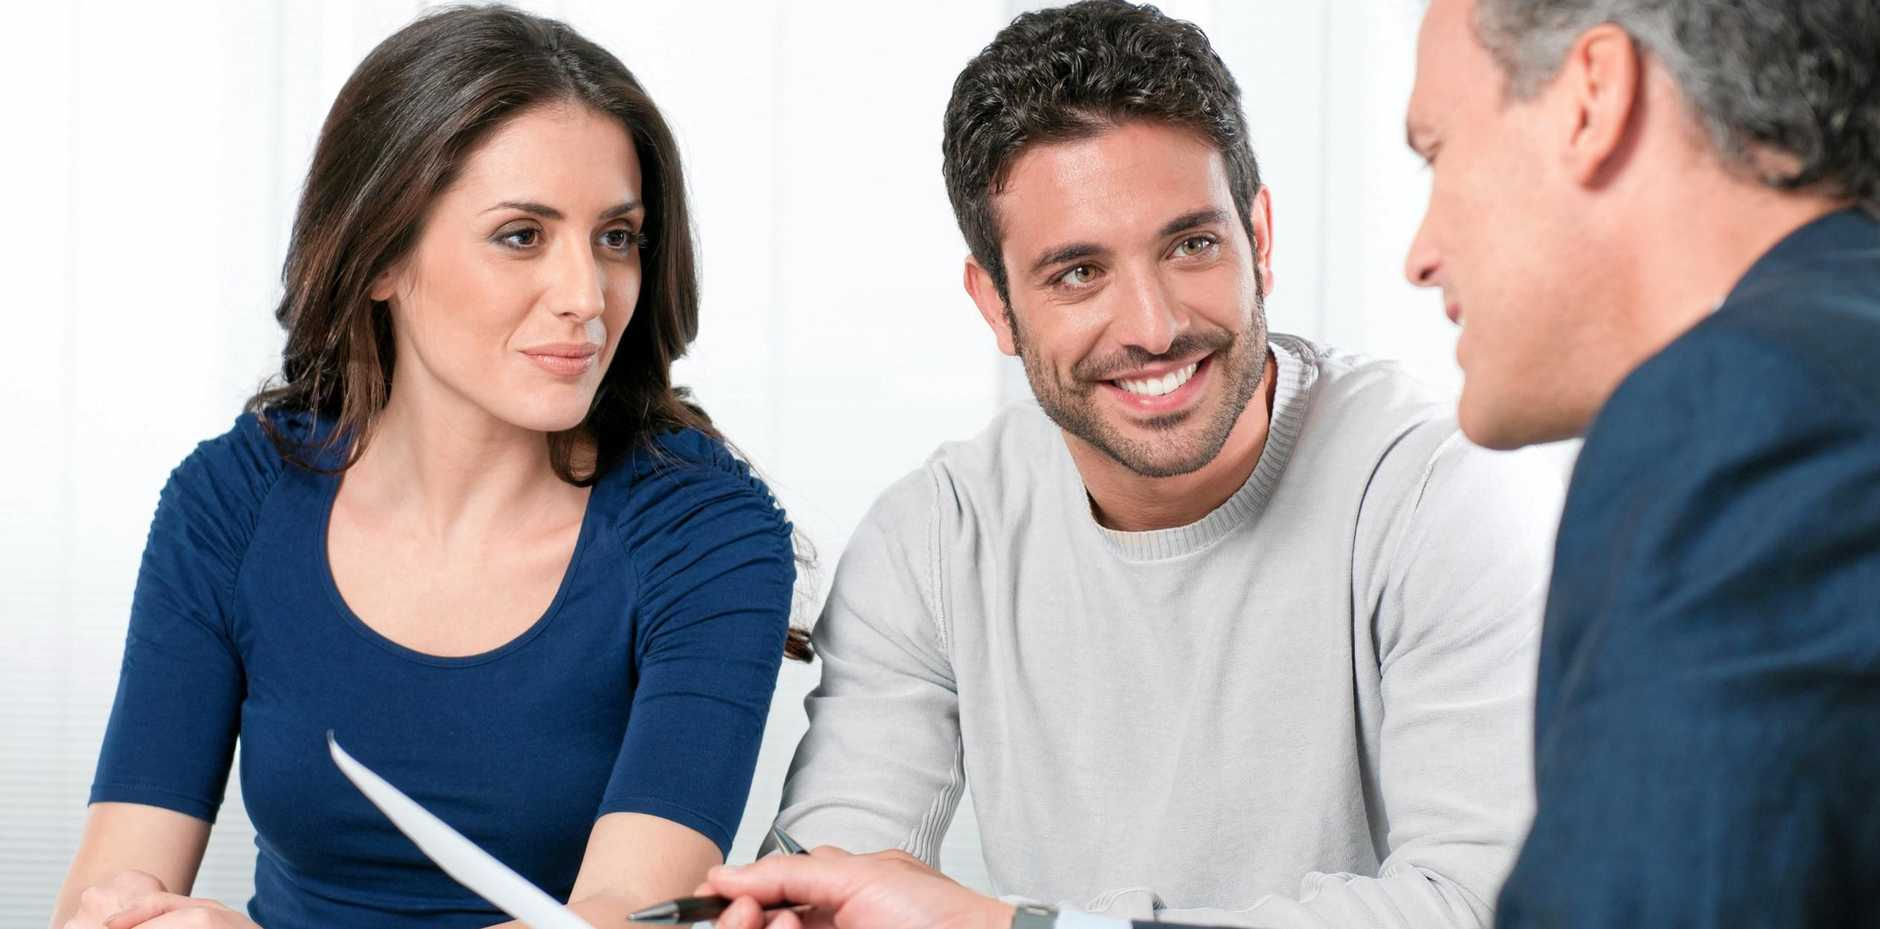 Any existing debt commitment impacts your ability to borrow for a home loan.